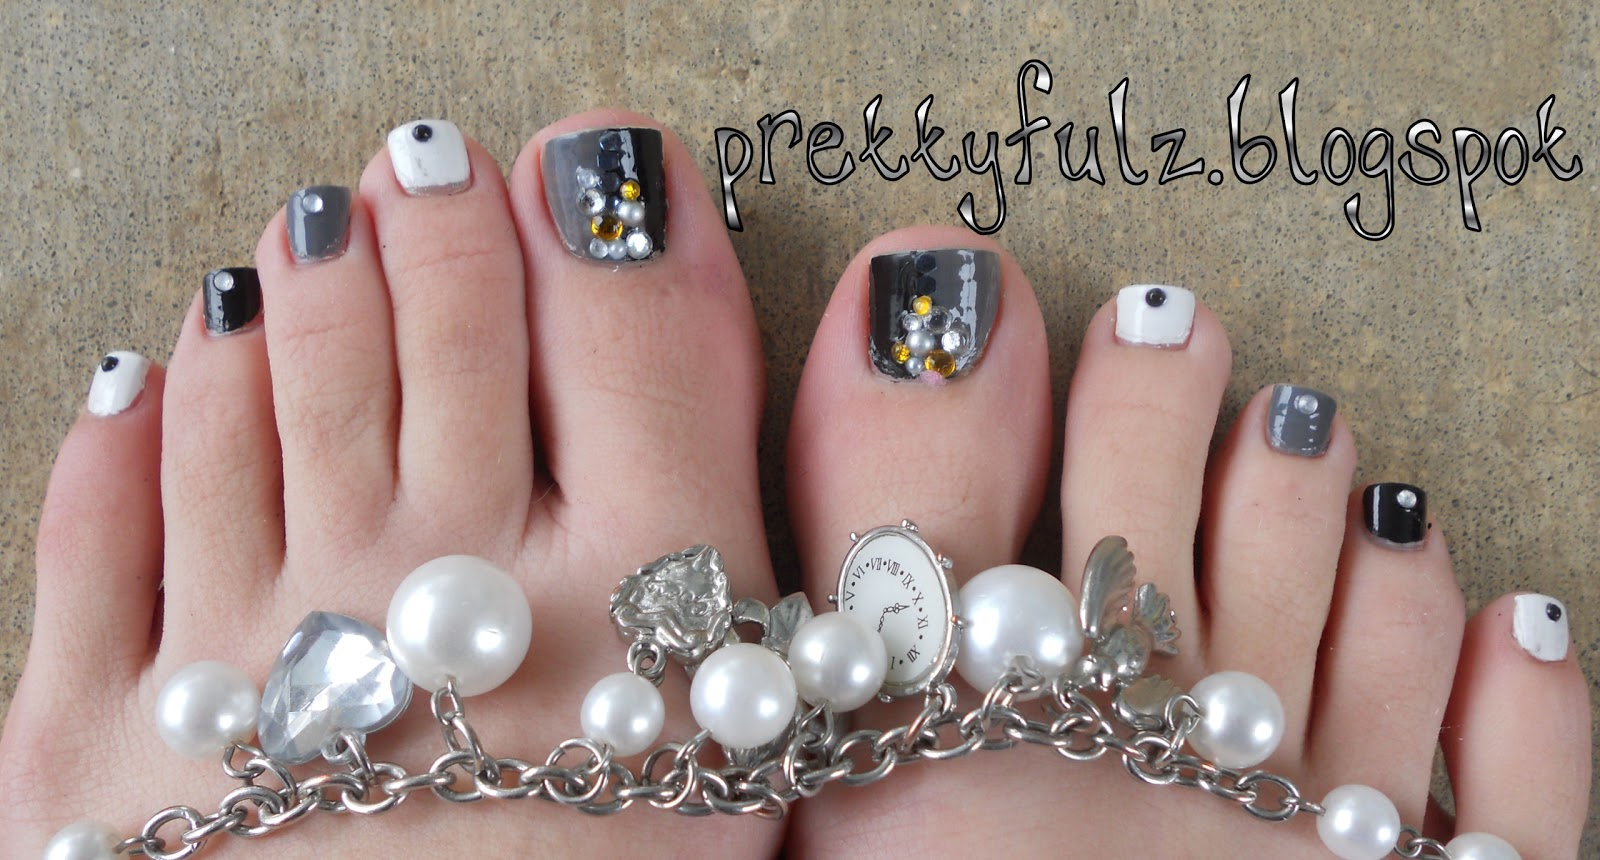 Prettyfulz pedicure nail art designs black white pedicure pedicure nail art designs black white pedicure prinsesfo Gallery